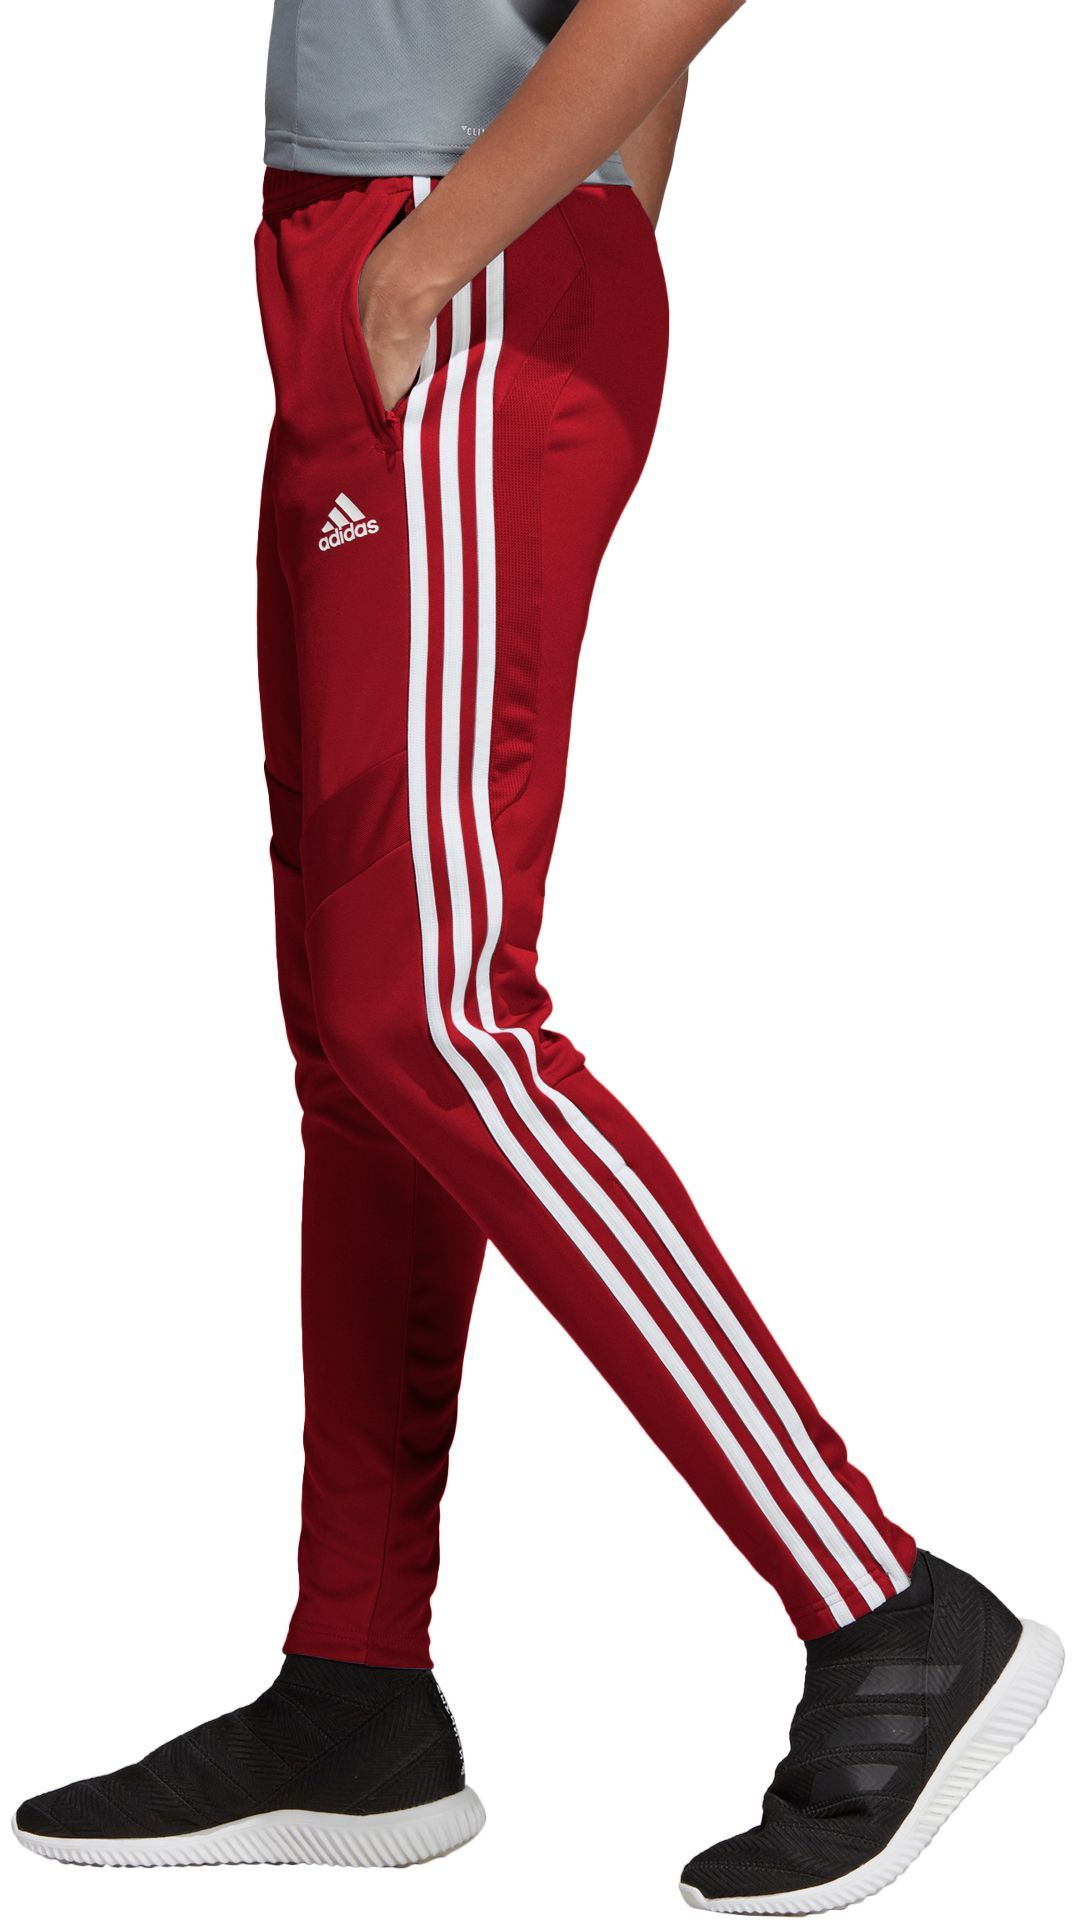 f41b86df1ff adidas Women's Tiro 19 Training Pants in 2019 | Products | Adidas ...